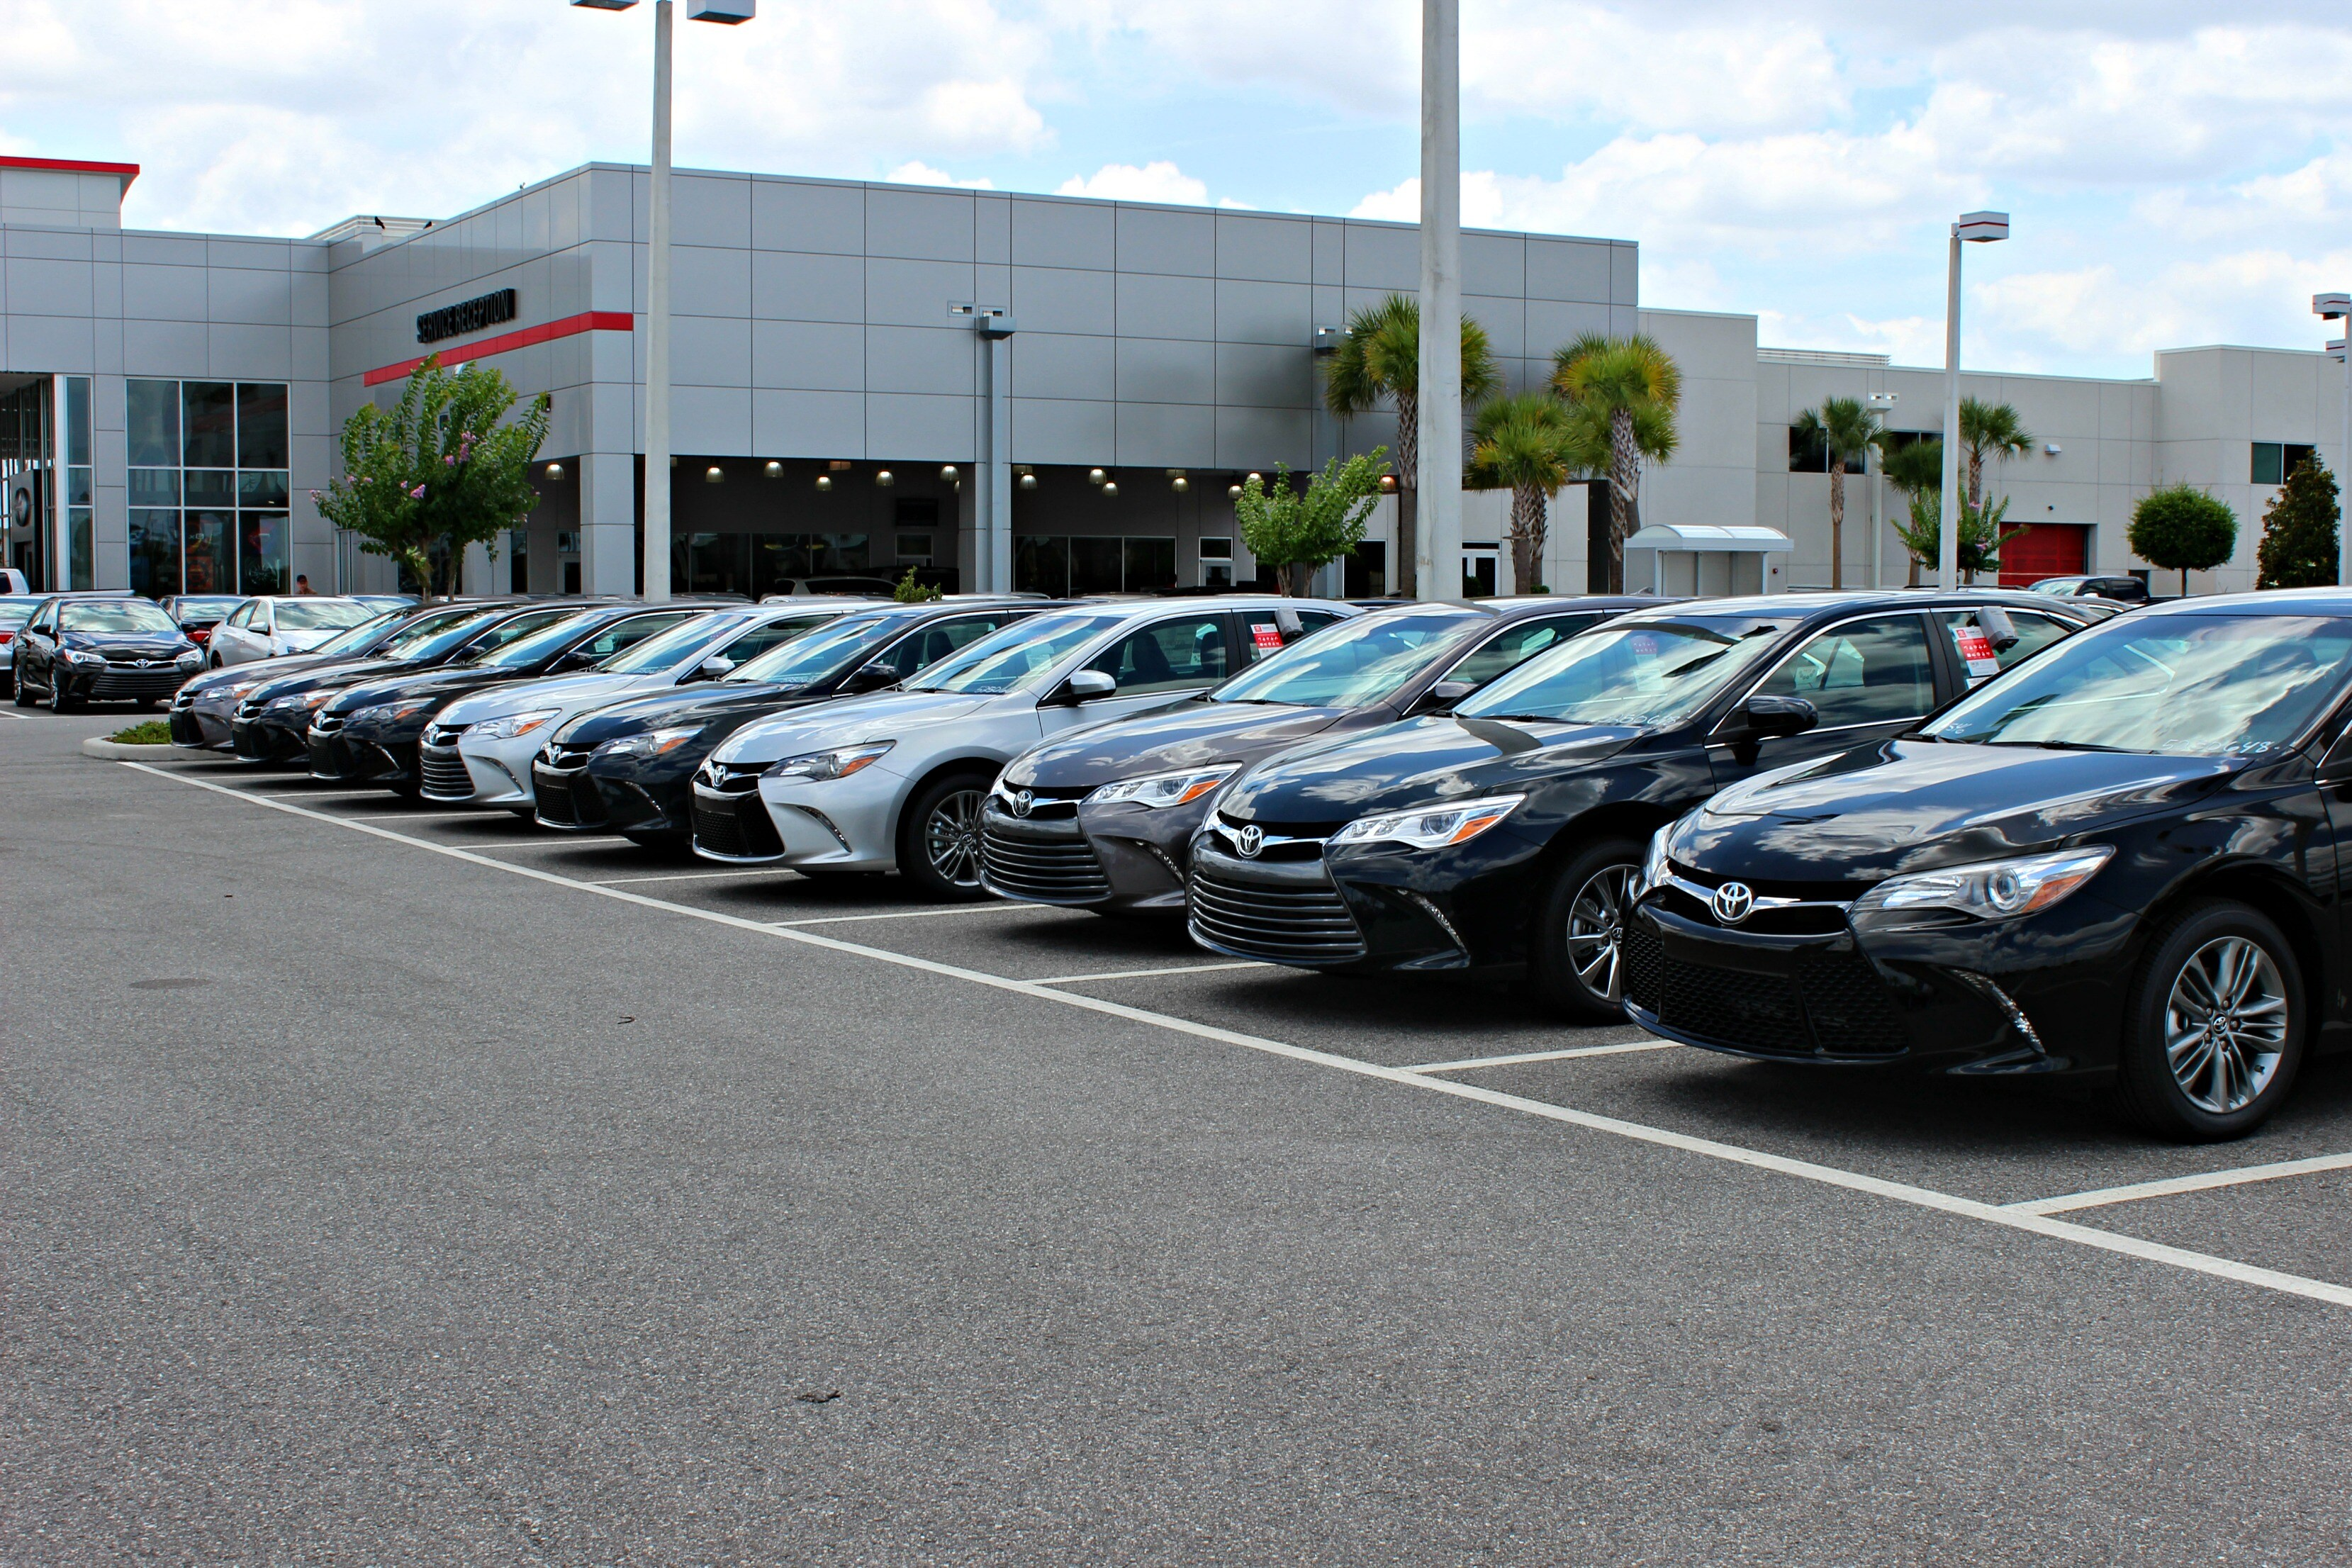 used car dealerships in Orlando